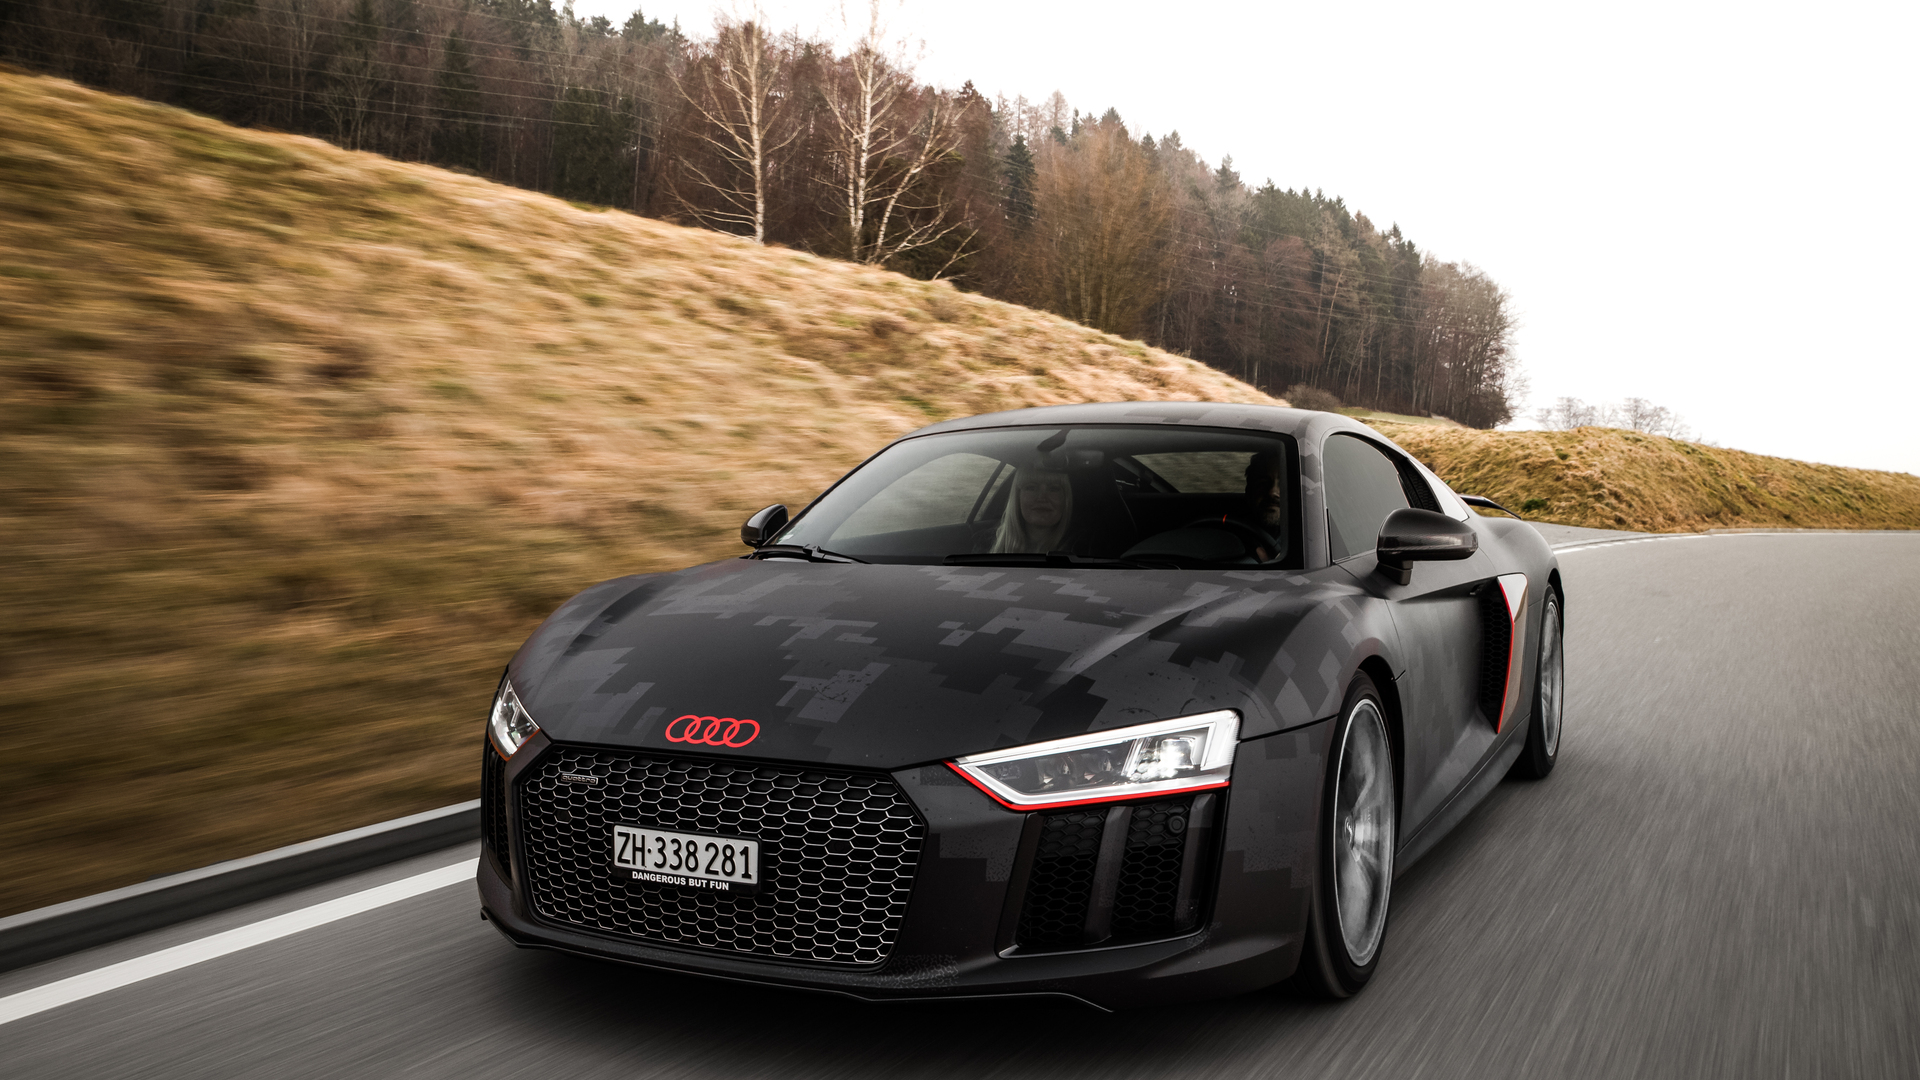 1920x1080 Black Audi R8 V10 Plus Laptop Full Hd 1080p Hd 4k